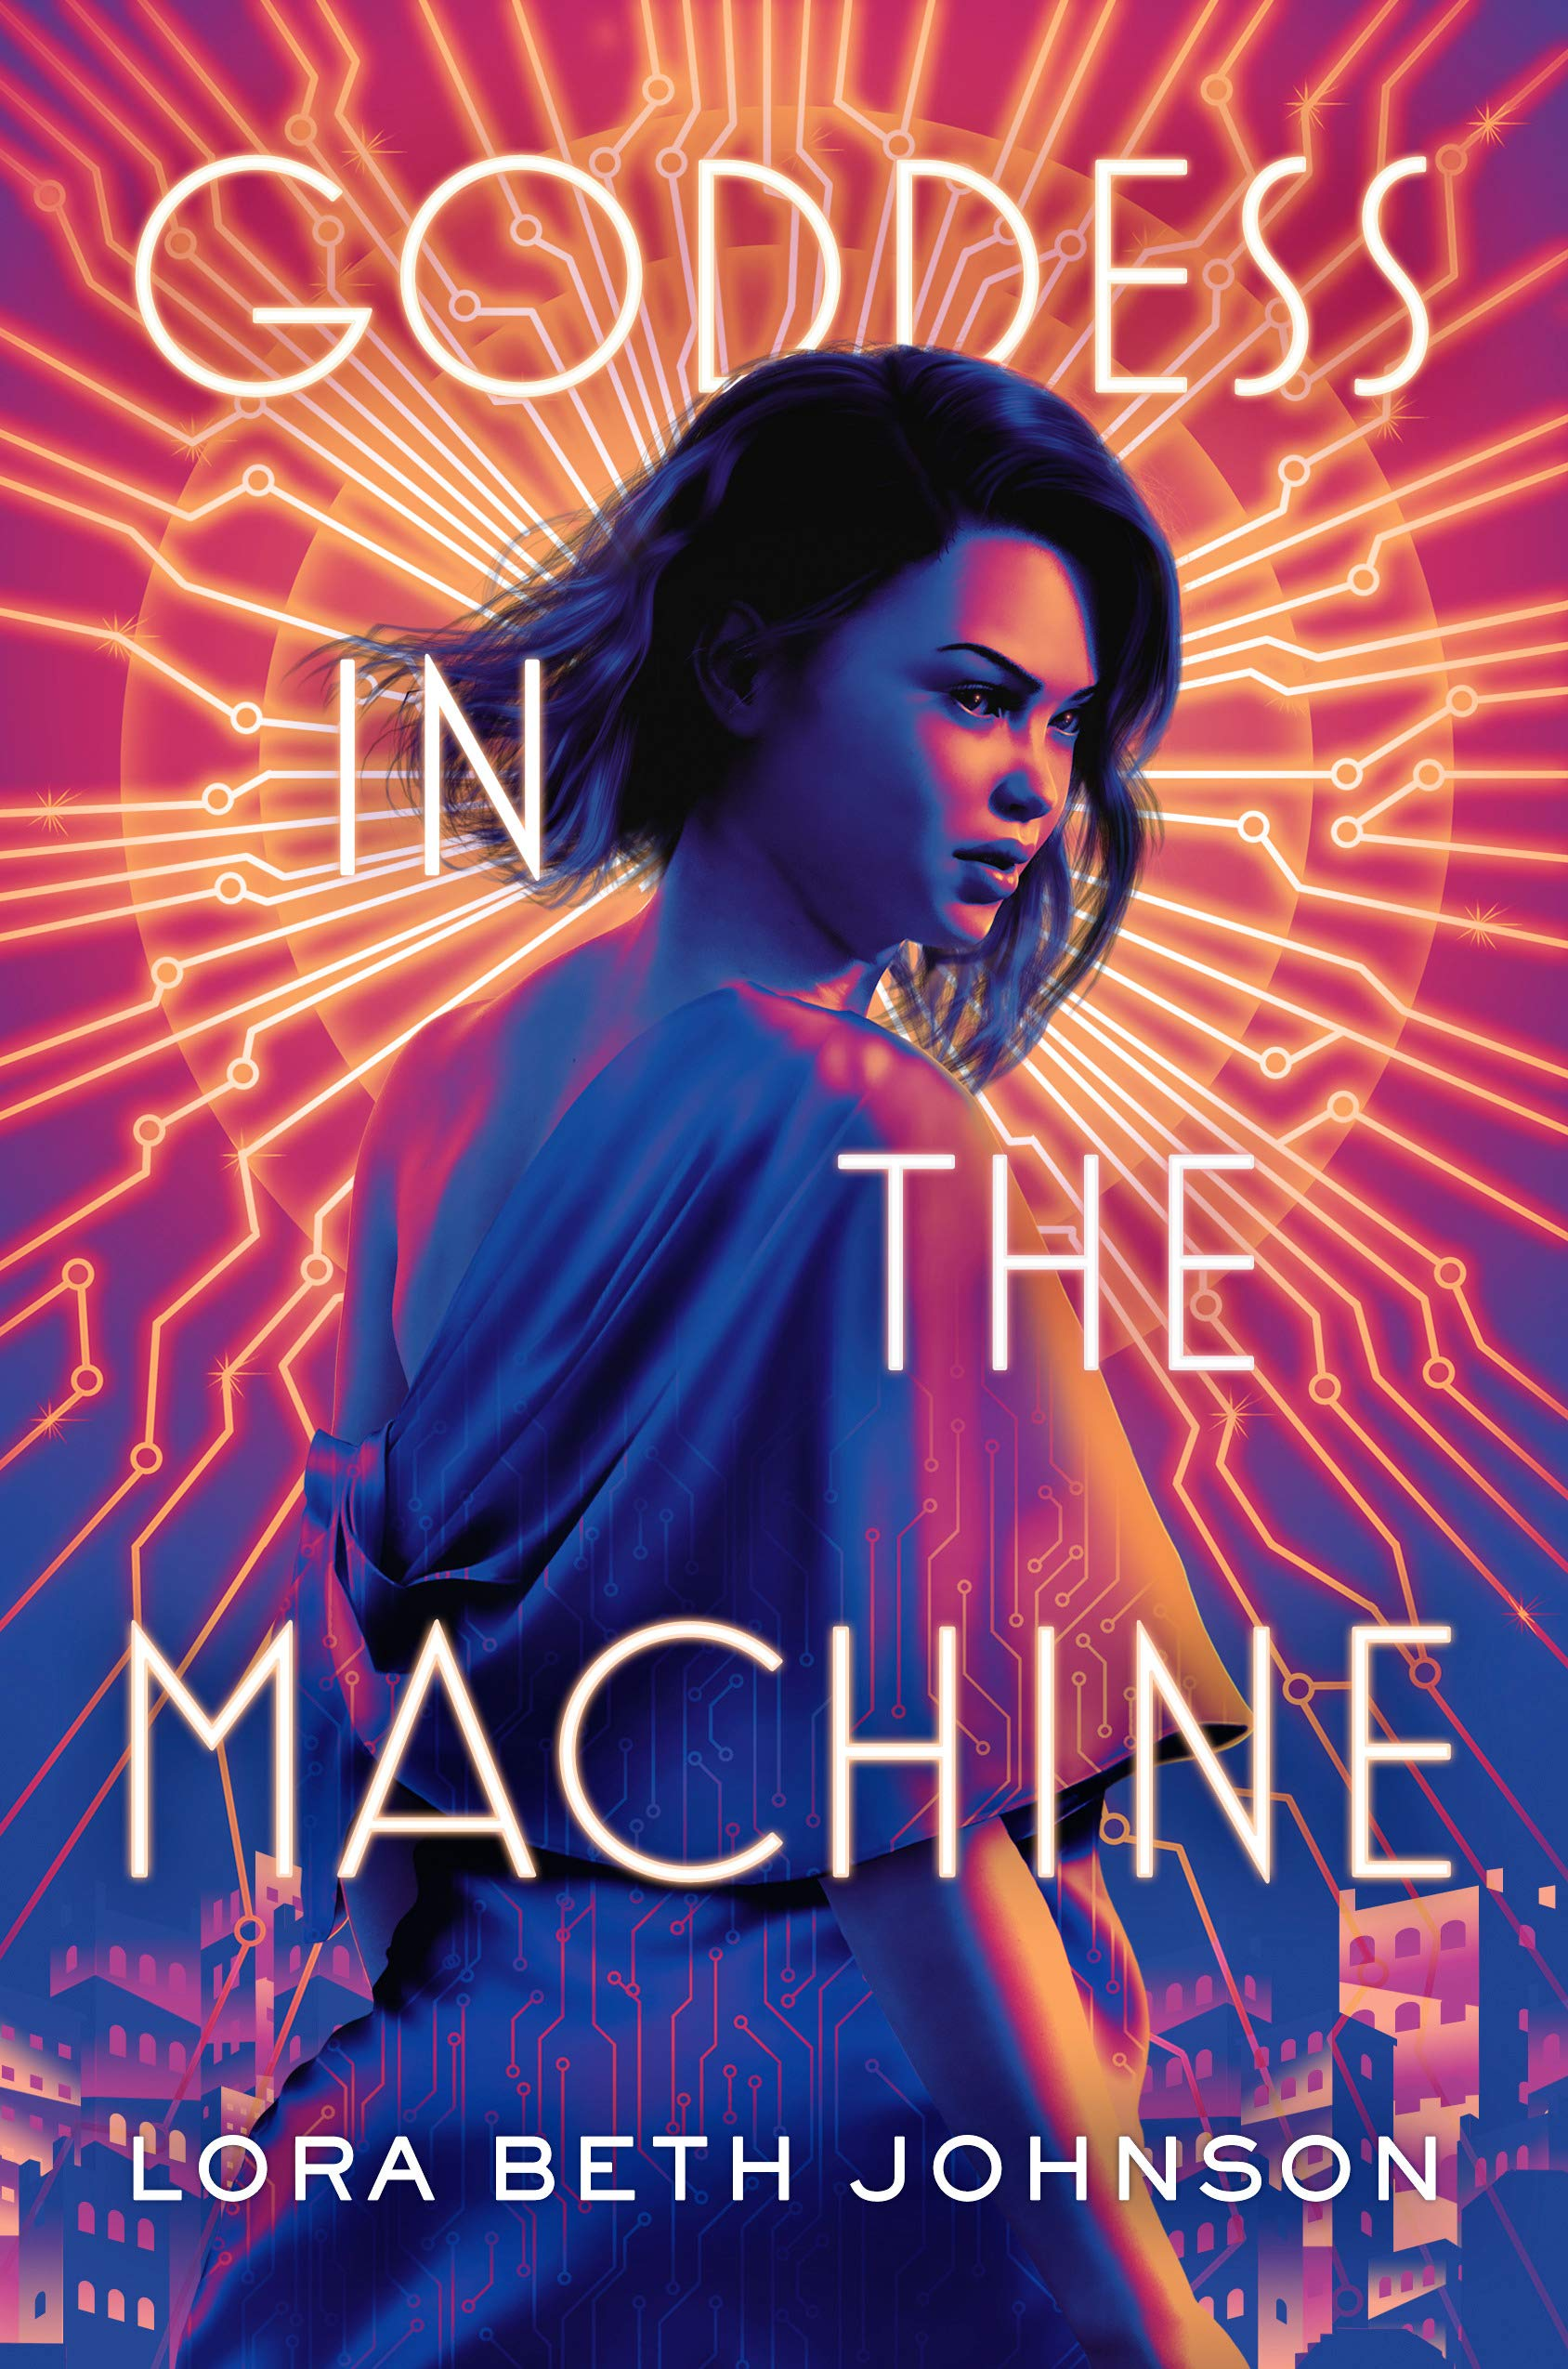 Amazon.com: Goddess in the Machine (9781984835925): Johnson, Lora ...